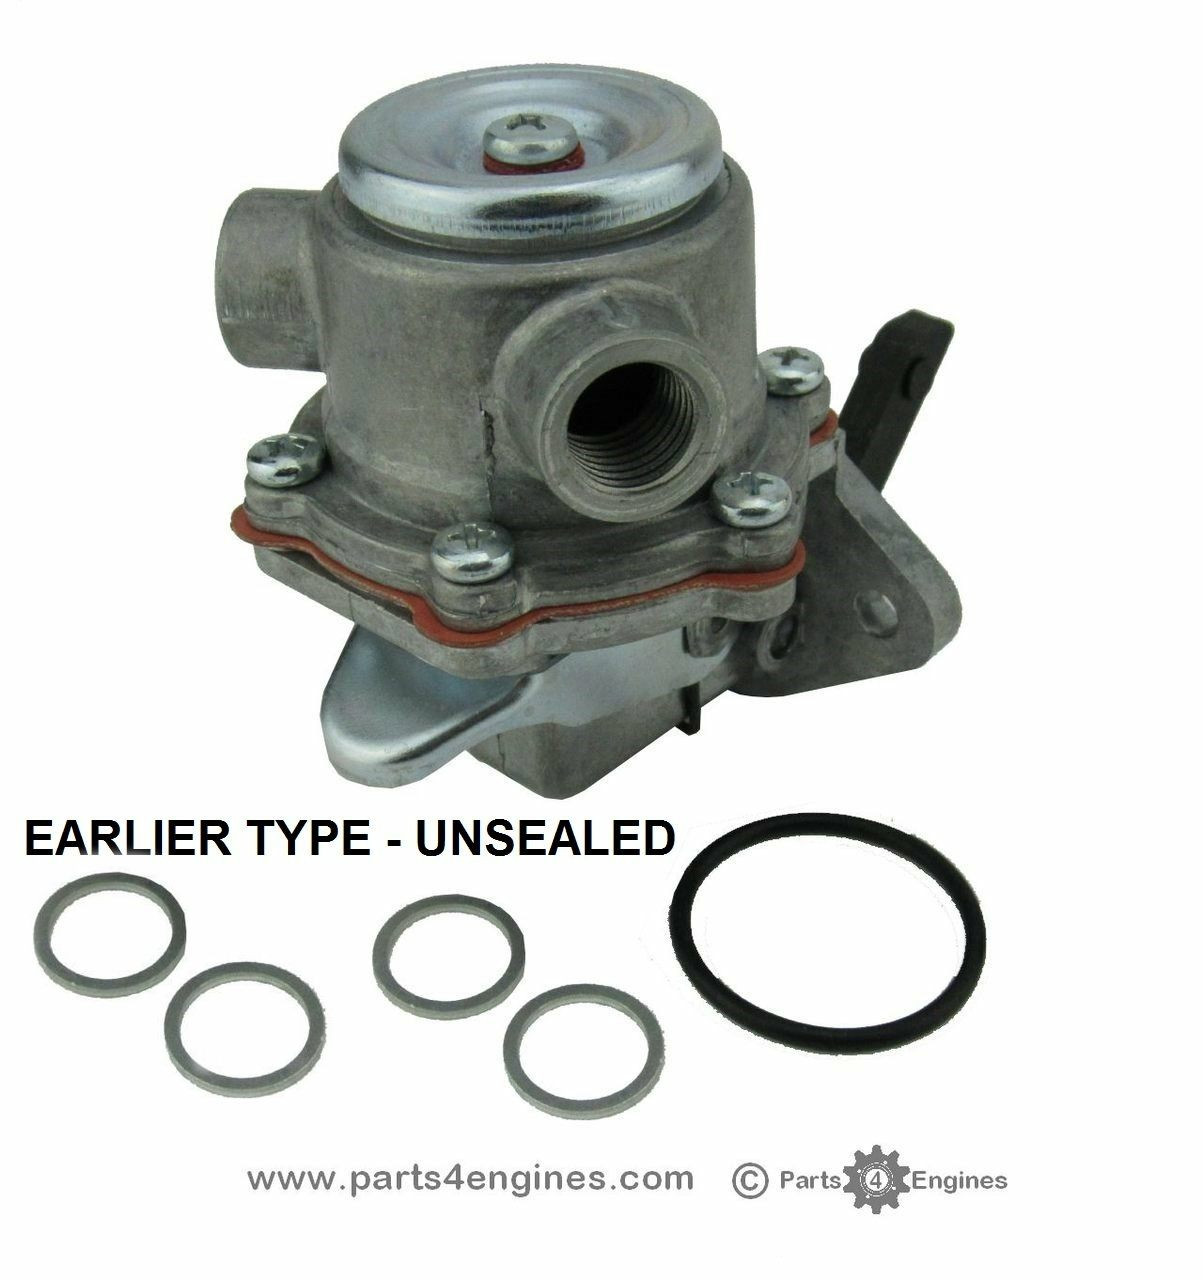 Volvo Penta 2003 fuel lift pump earlier from Parts4engines.com